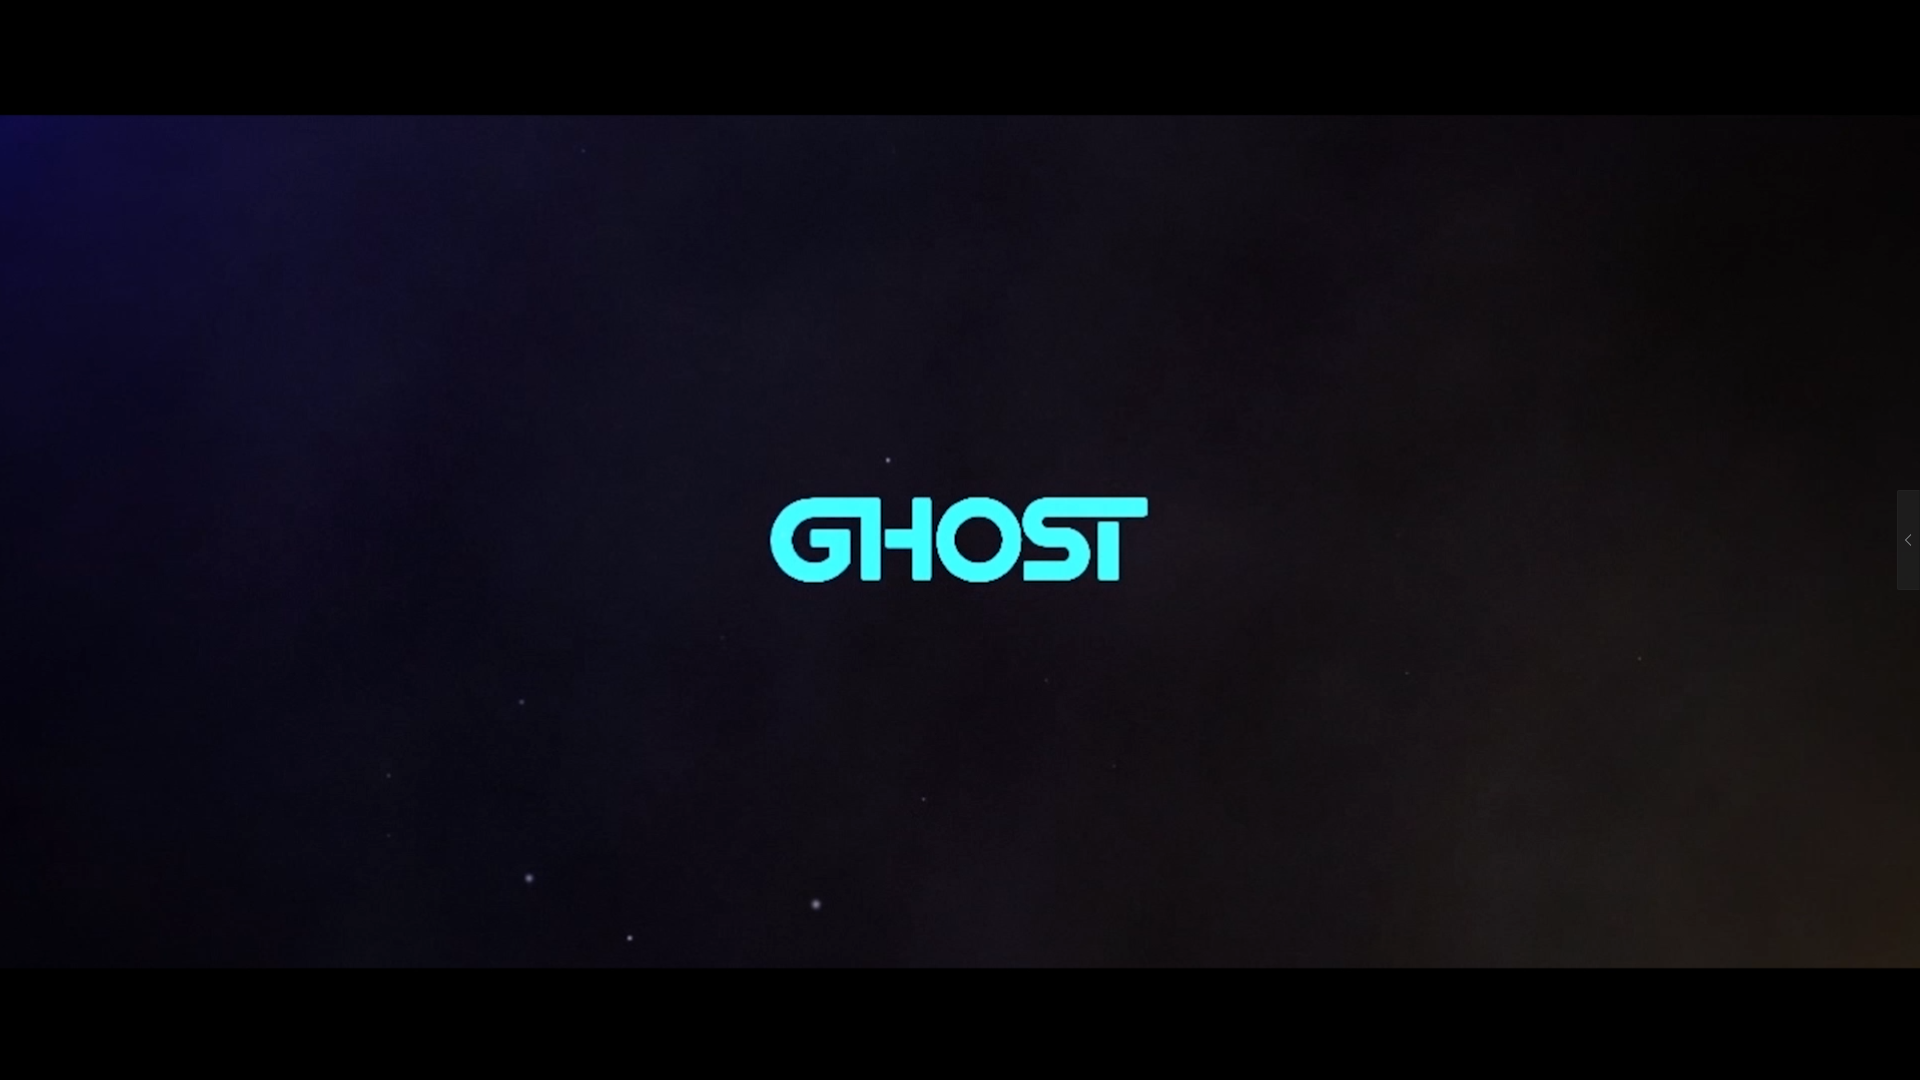 GHOST follow me mode